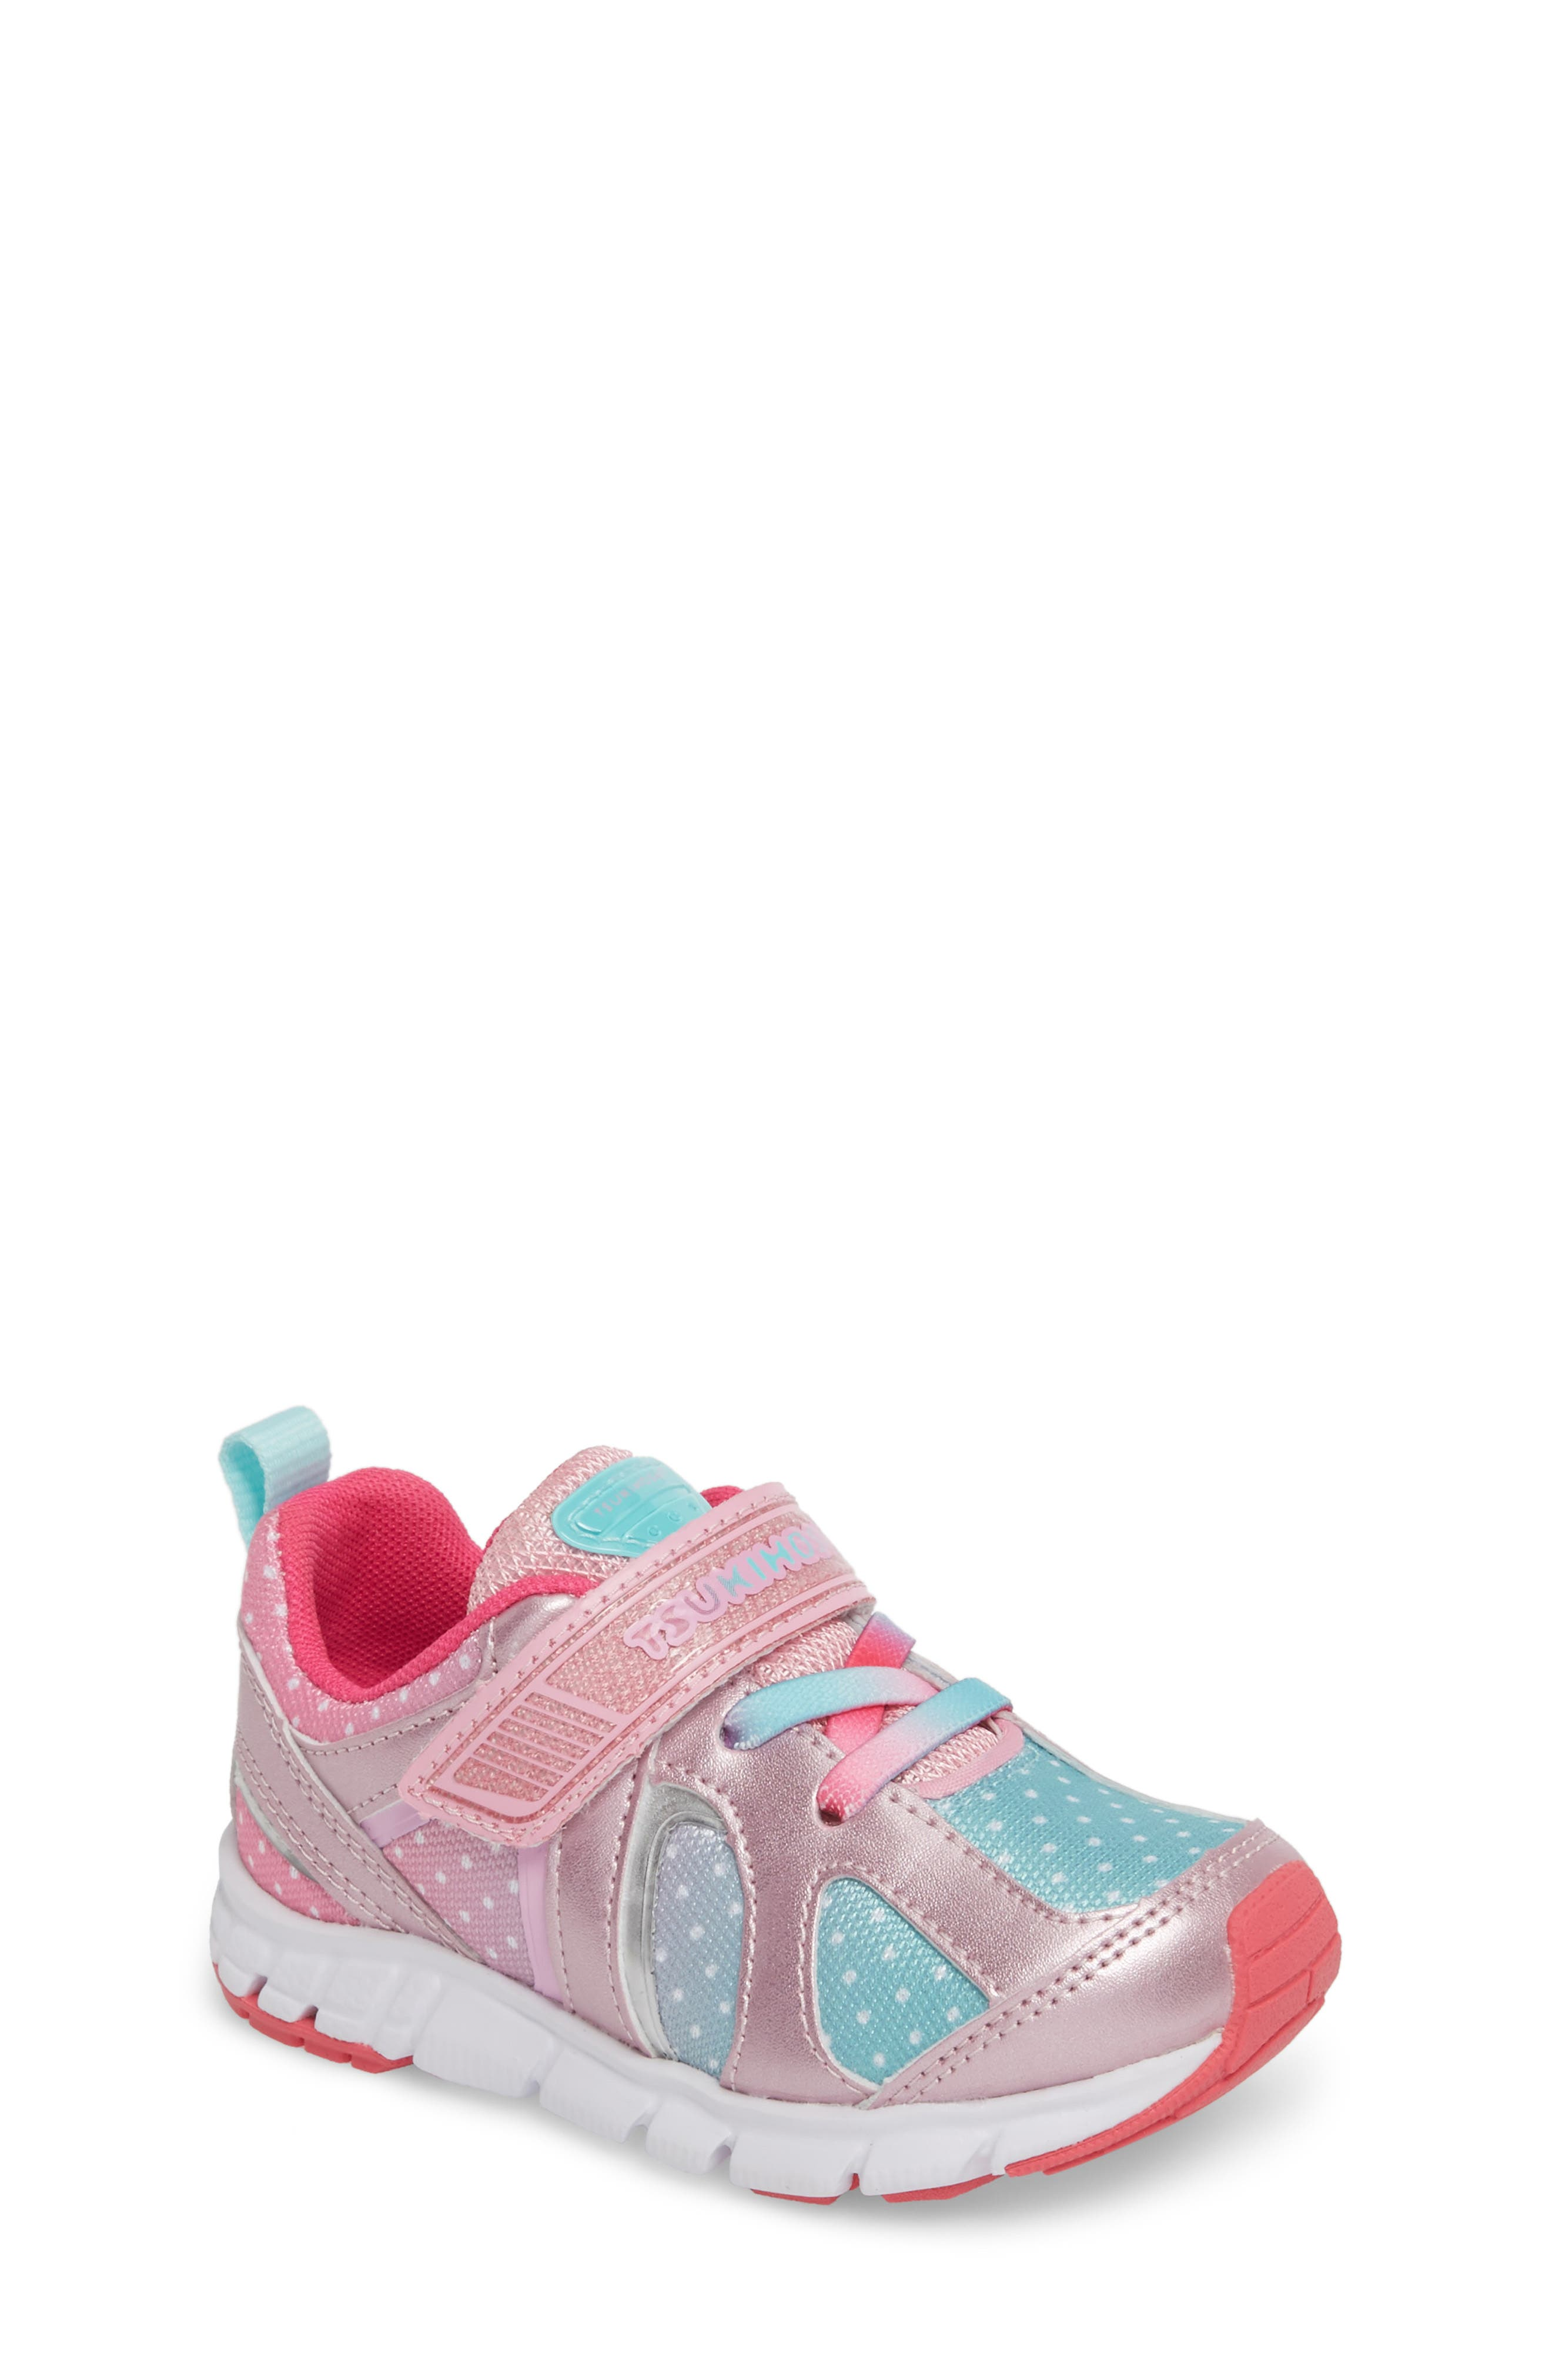 Rainbow Washable Sneaker,                             Main thumbnail 1, color,                             Rose/ Mint